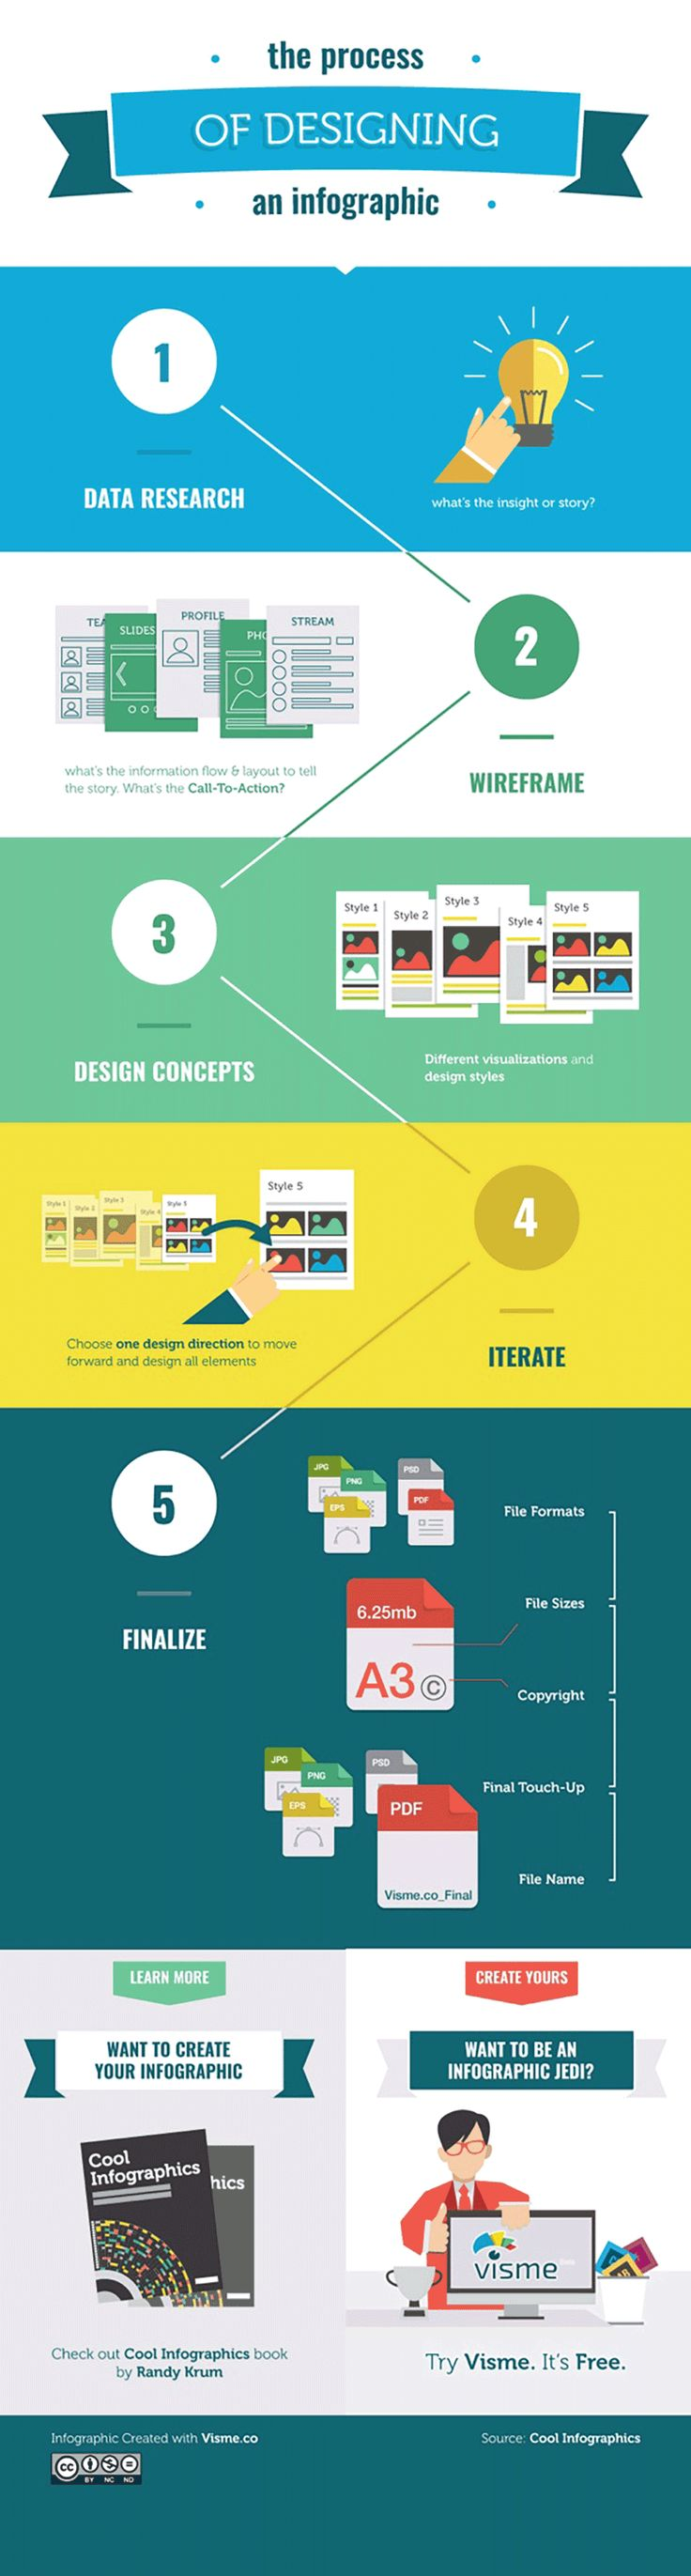 Would you like to designing your own infographic a try? This infographic helps you with you creation process. #infographic #design #process